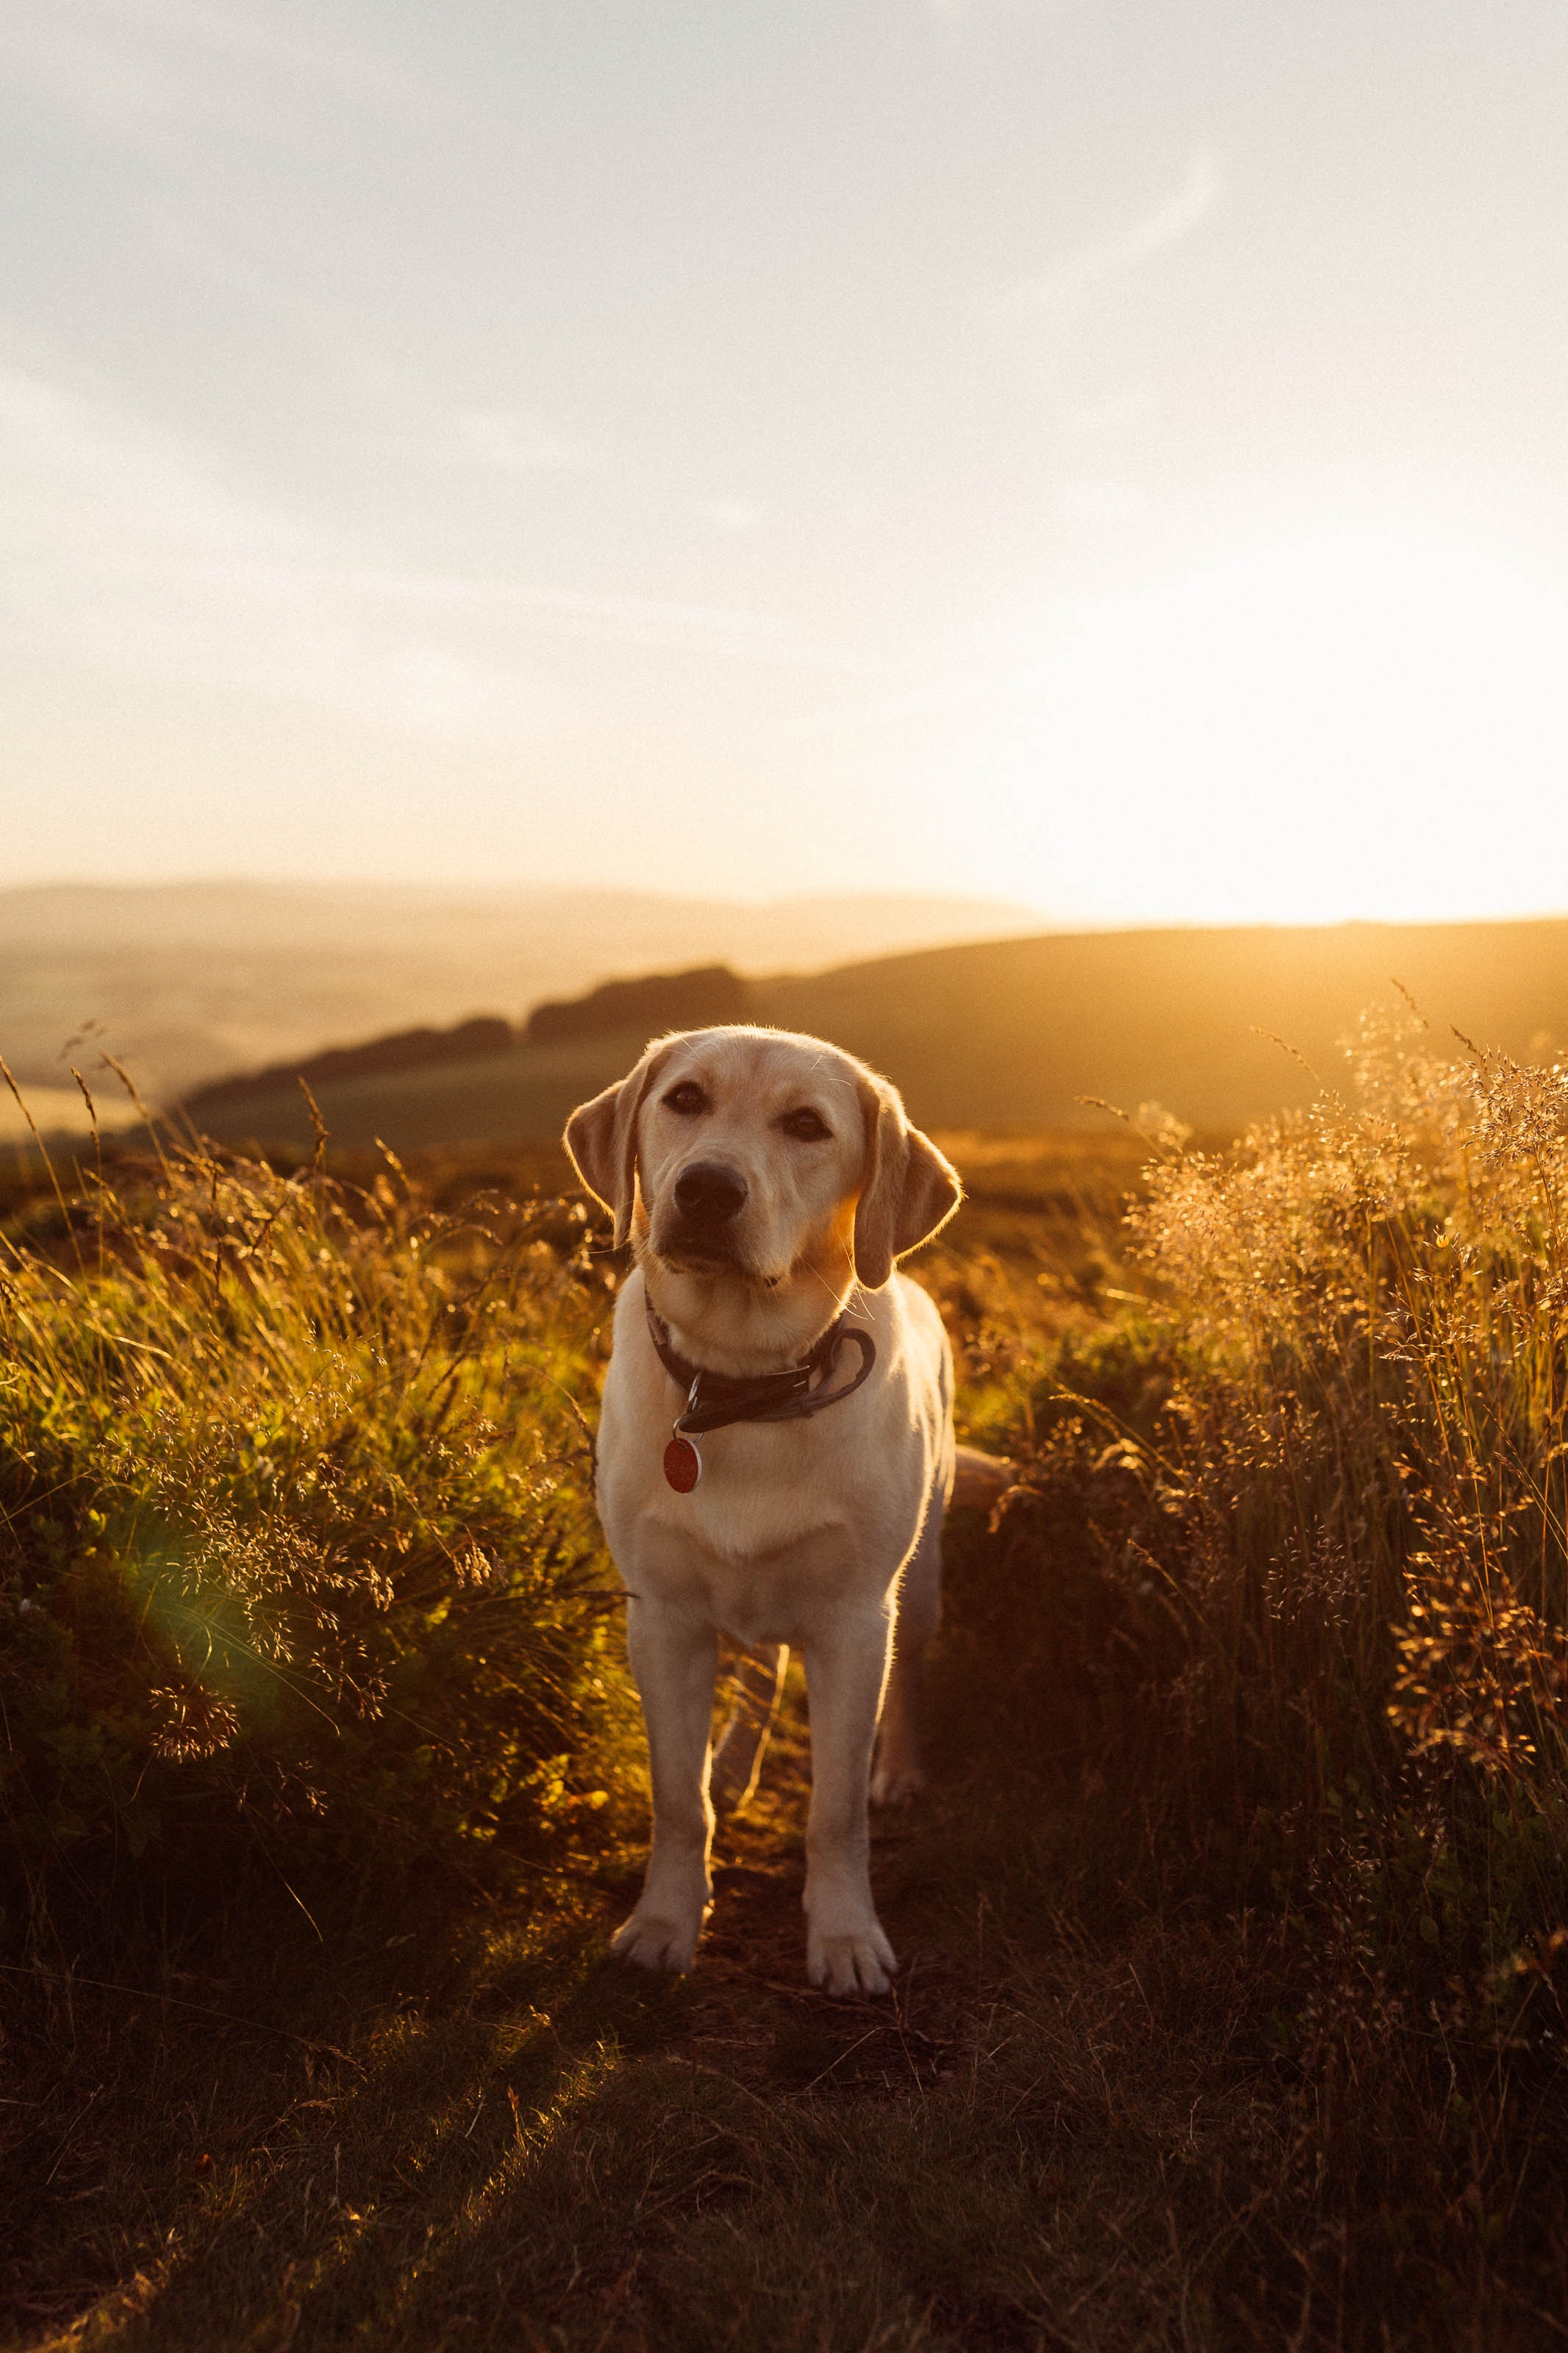 153190 download wallpaper Animals, Labrador, Dog, Grass, Sunset screensavers and pictures for free